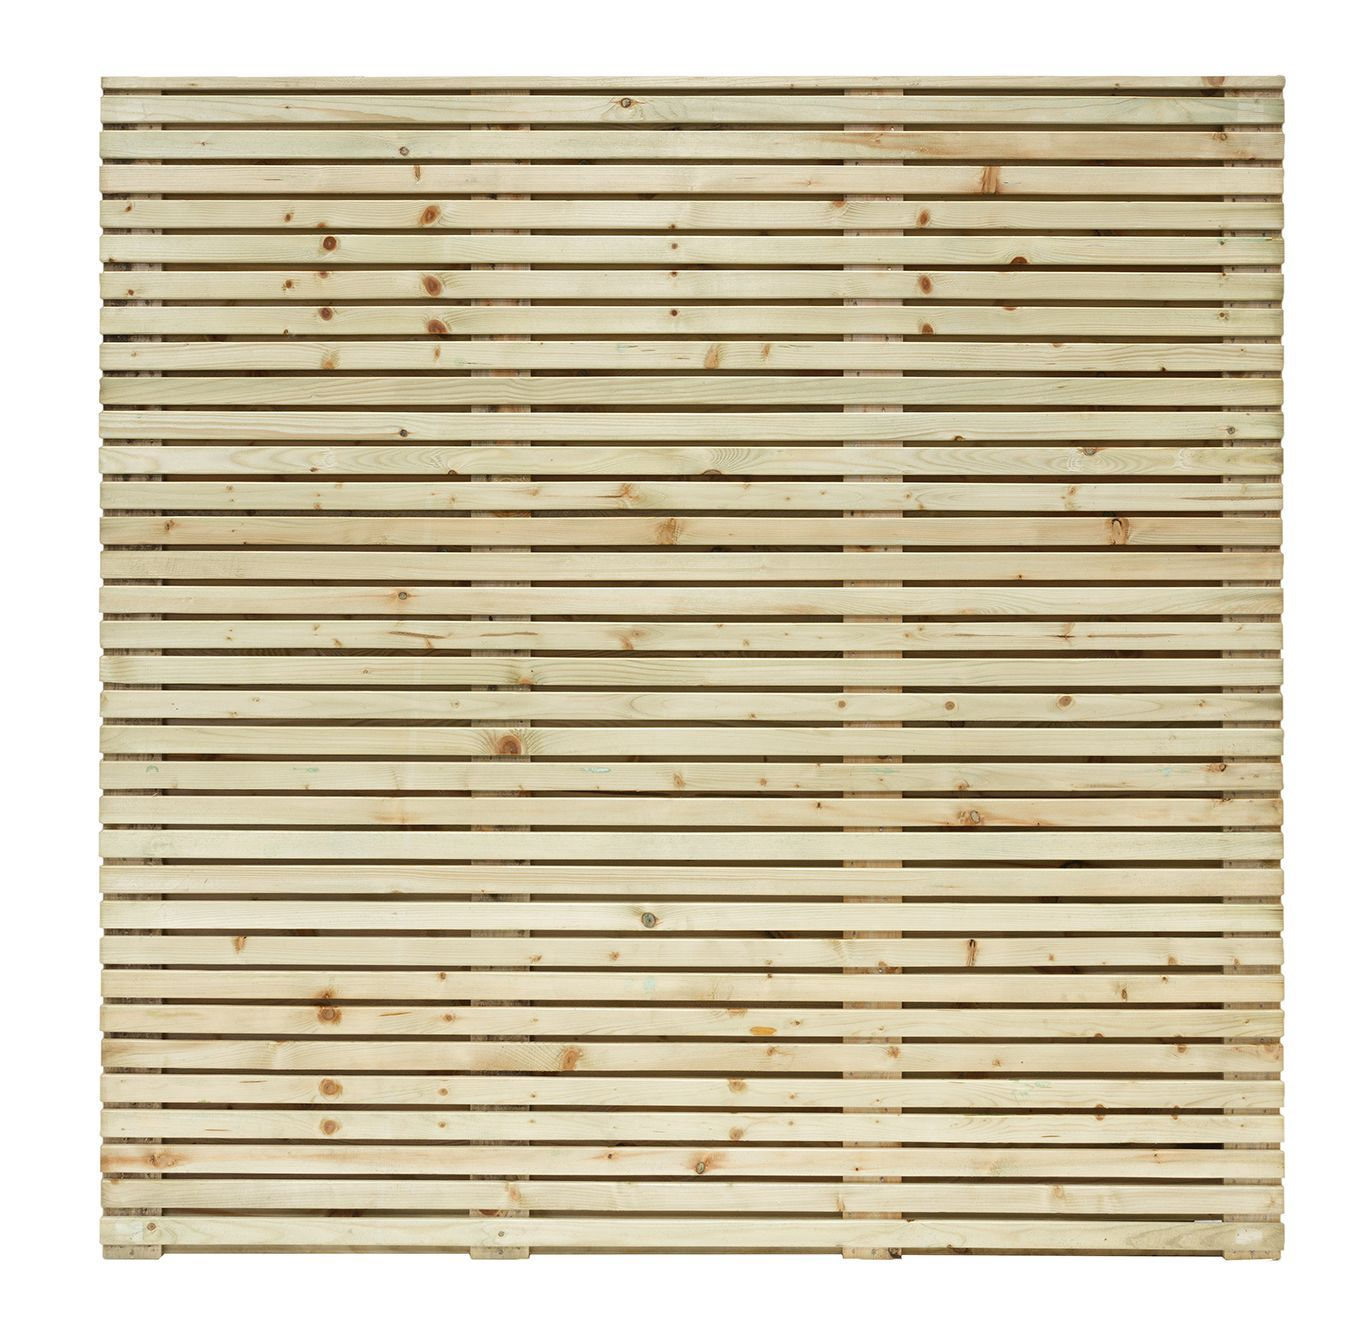 Grange Contemporary Horizontal Slat Fence Panel (w)1.79 M (h)1.79m, Pack Of 4